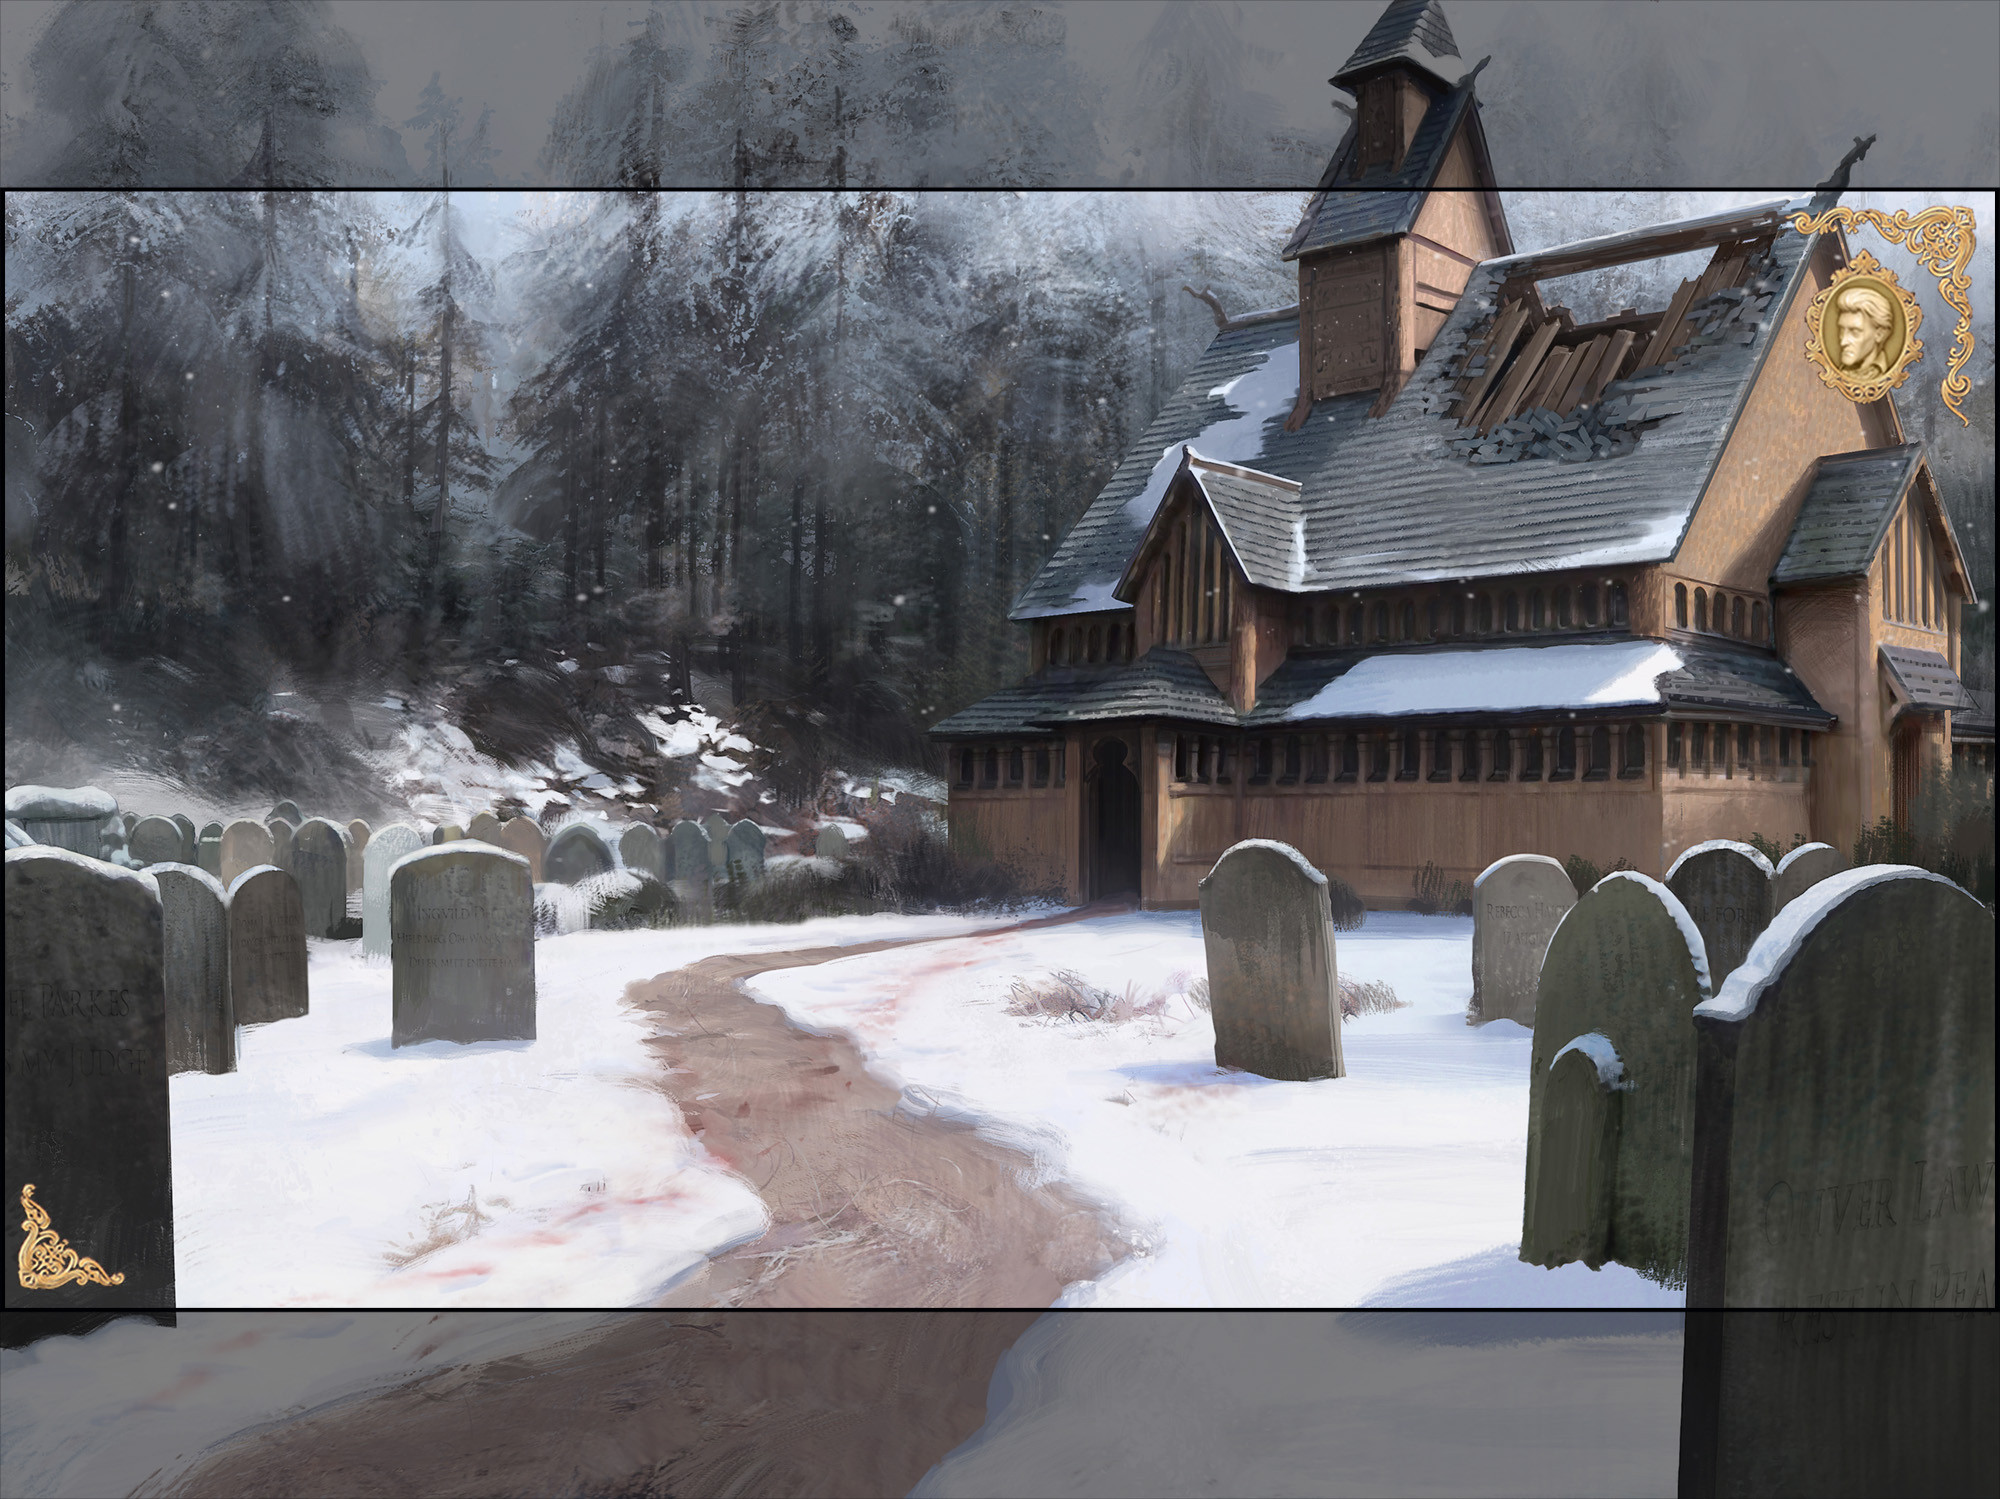 I researched period Norwegian architecture and their beautiful stave churches. Liberties were taking for sake of atmosphere, but the process and result was really fun. There are many incredibly underrated Norwegian landscape painters that inspired me!